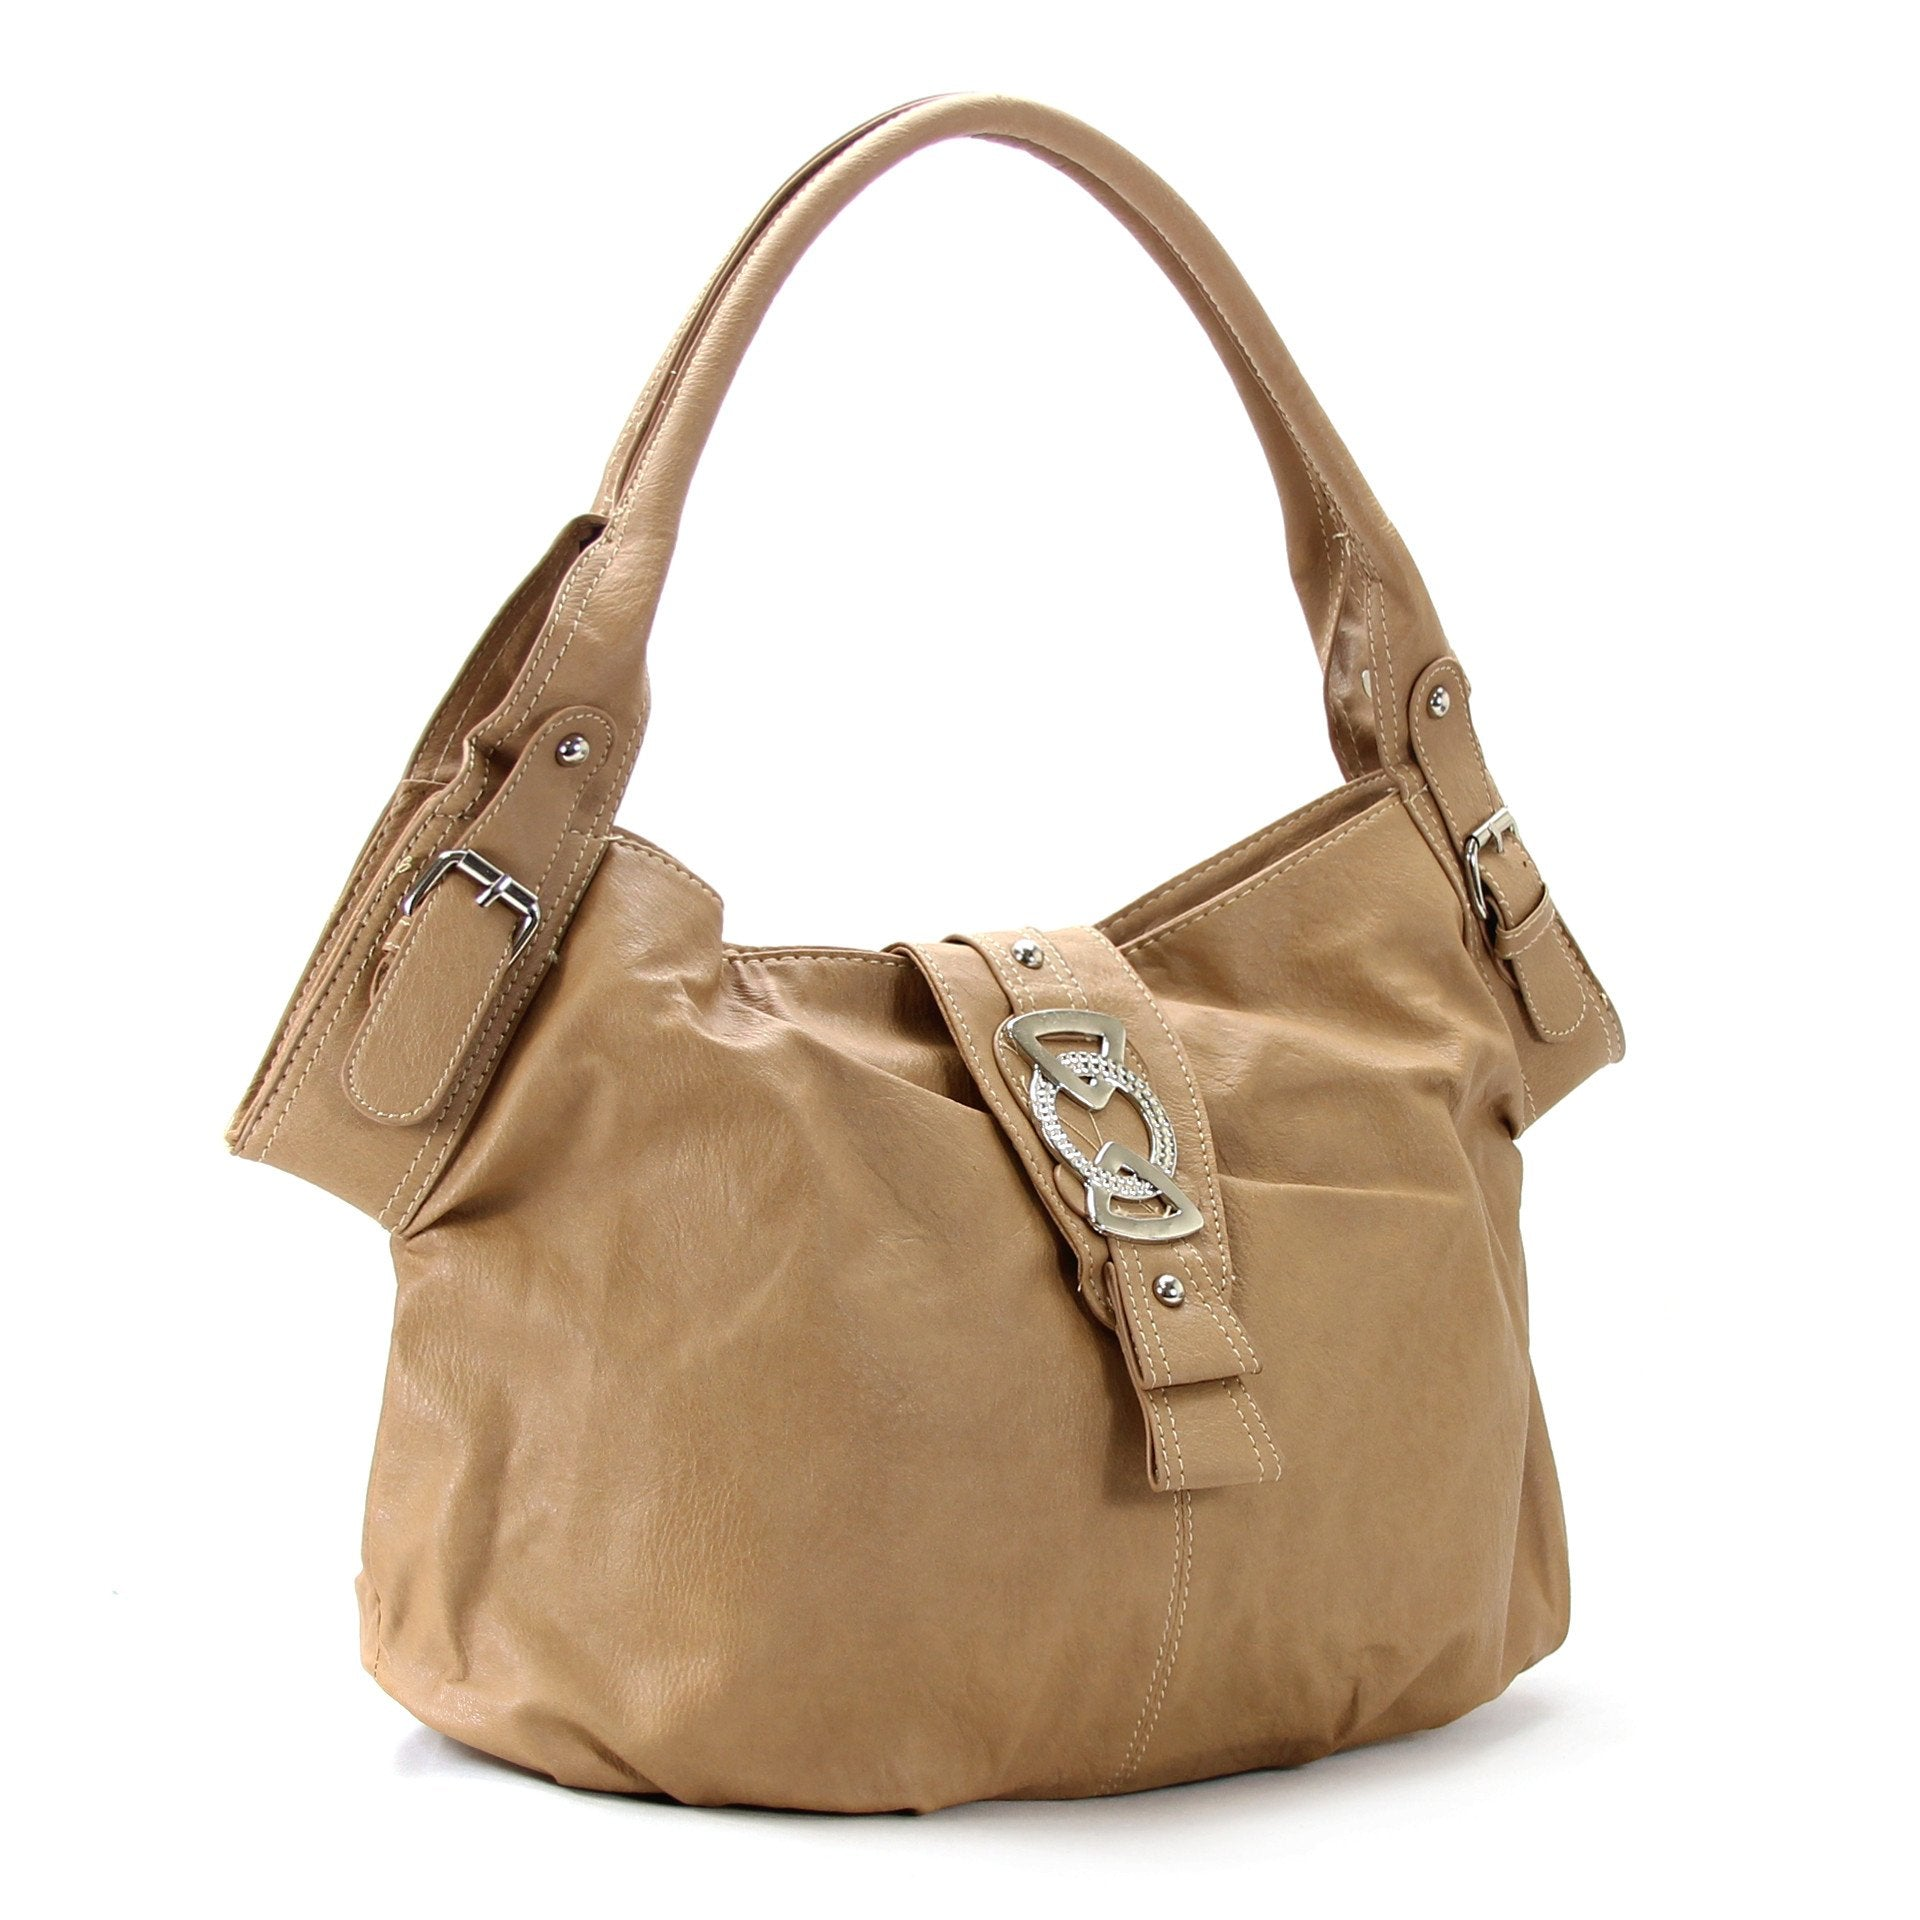 Classic Everyday Fold Over Buckle Purse Handbag Tote Bag - Khaki - Pop Fashion